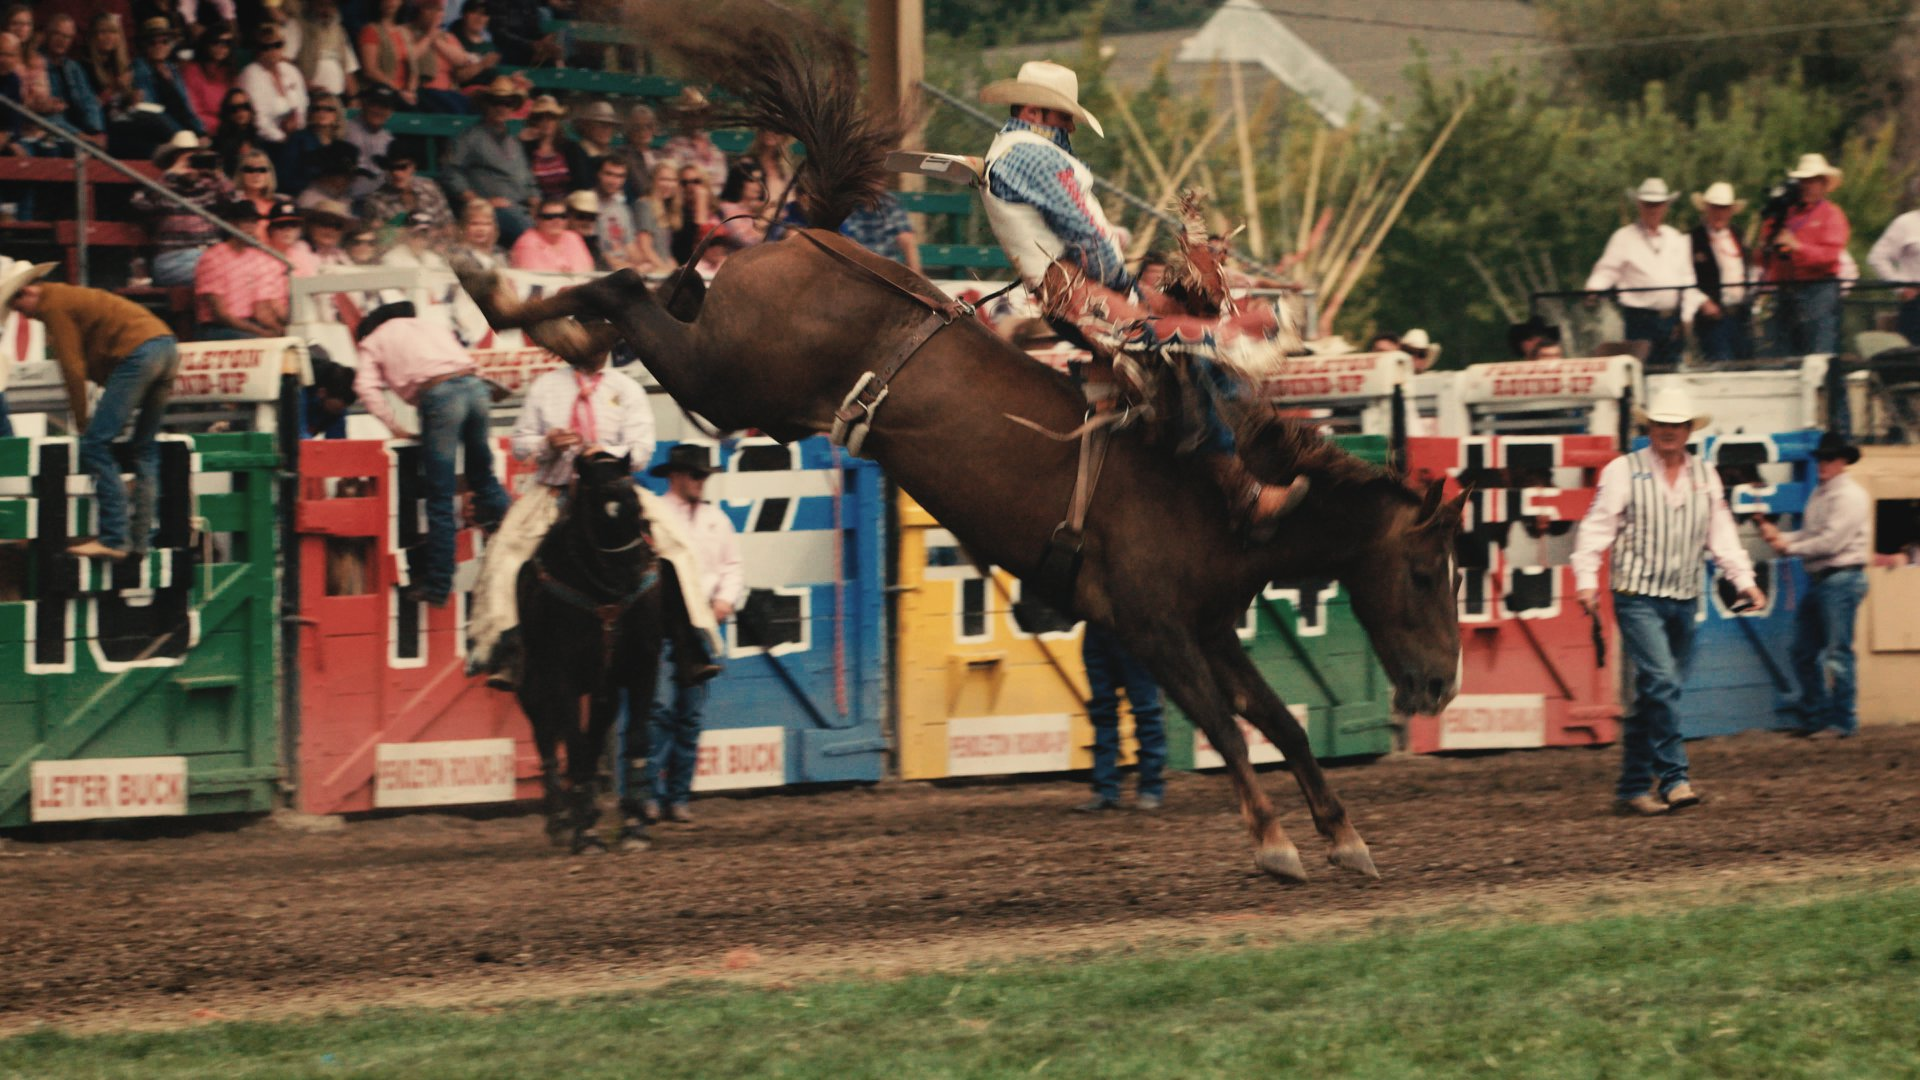 Let'er Buck, a rodeo documentary playing Friday at 8:00 pm